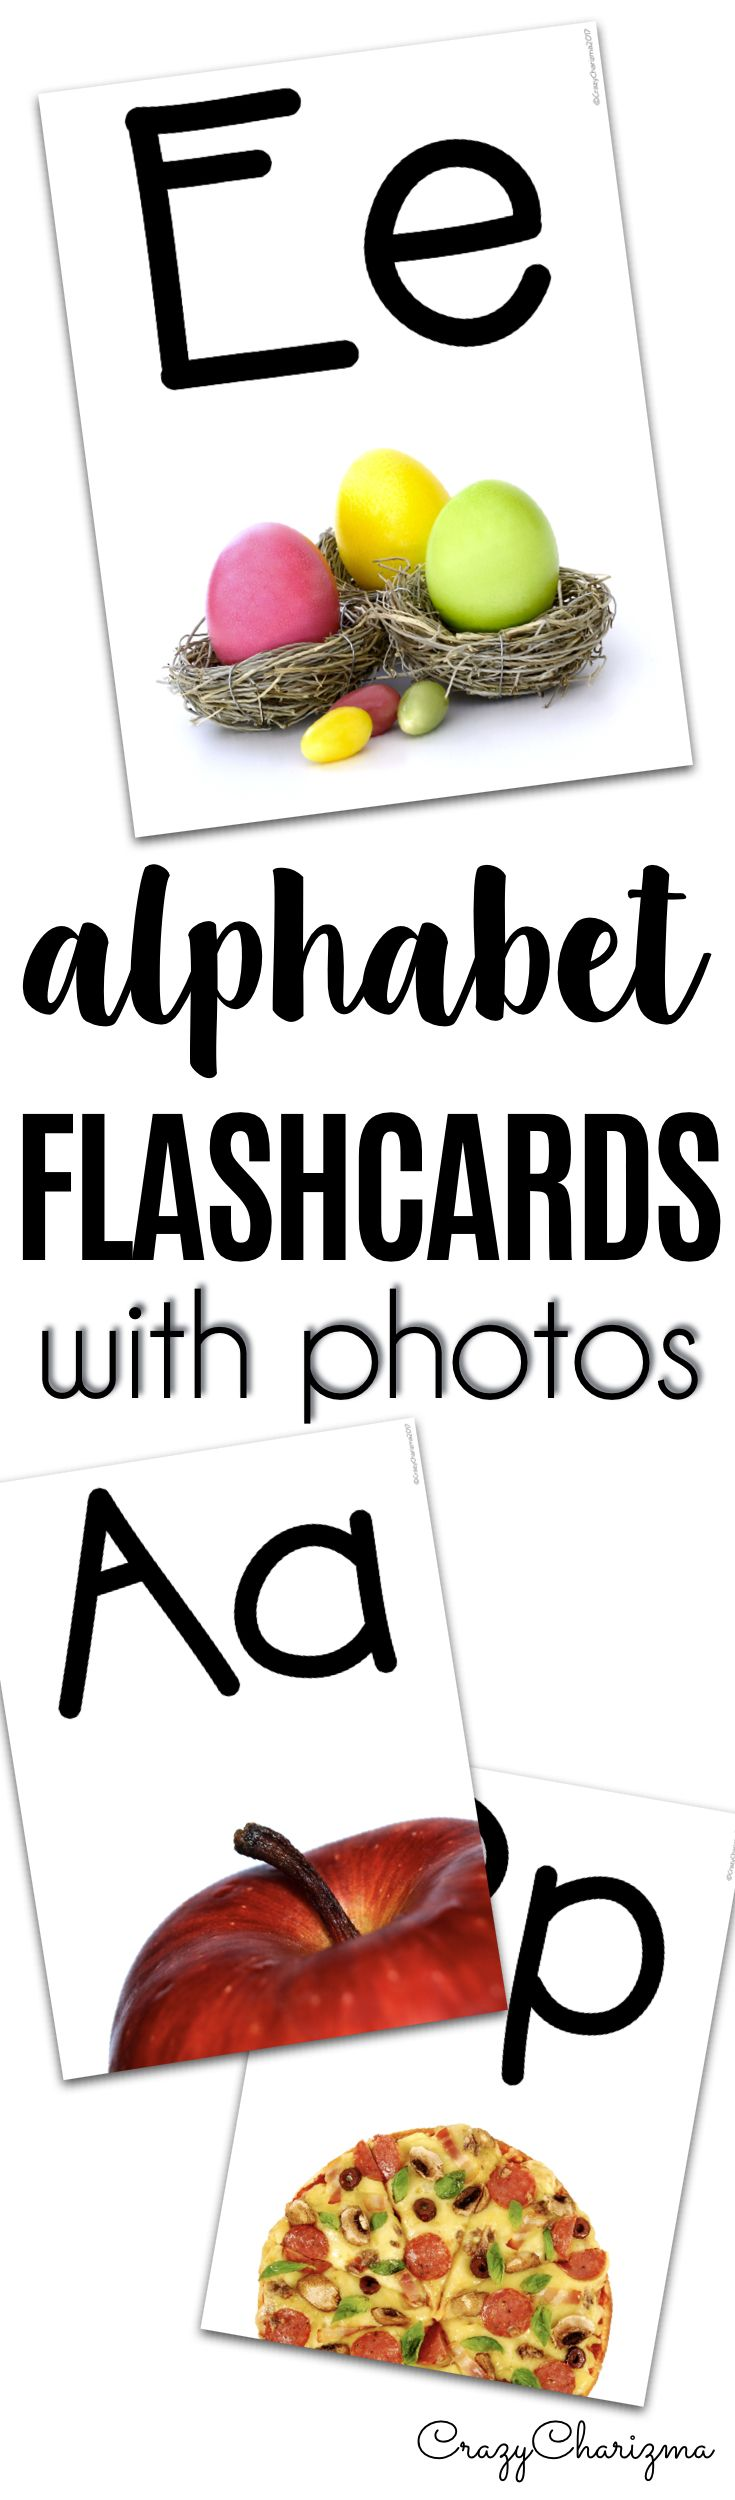 """Use these bright printable alphabet flashcards in your classroom or homeschool. The real photos will help children remember and associate letters with images. The packet can be used as word walls, flashcards for ESL students (of various ages), """"I have / who has"""" game (just print 4, 6 or 8 images on one page) and more! 